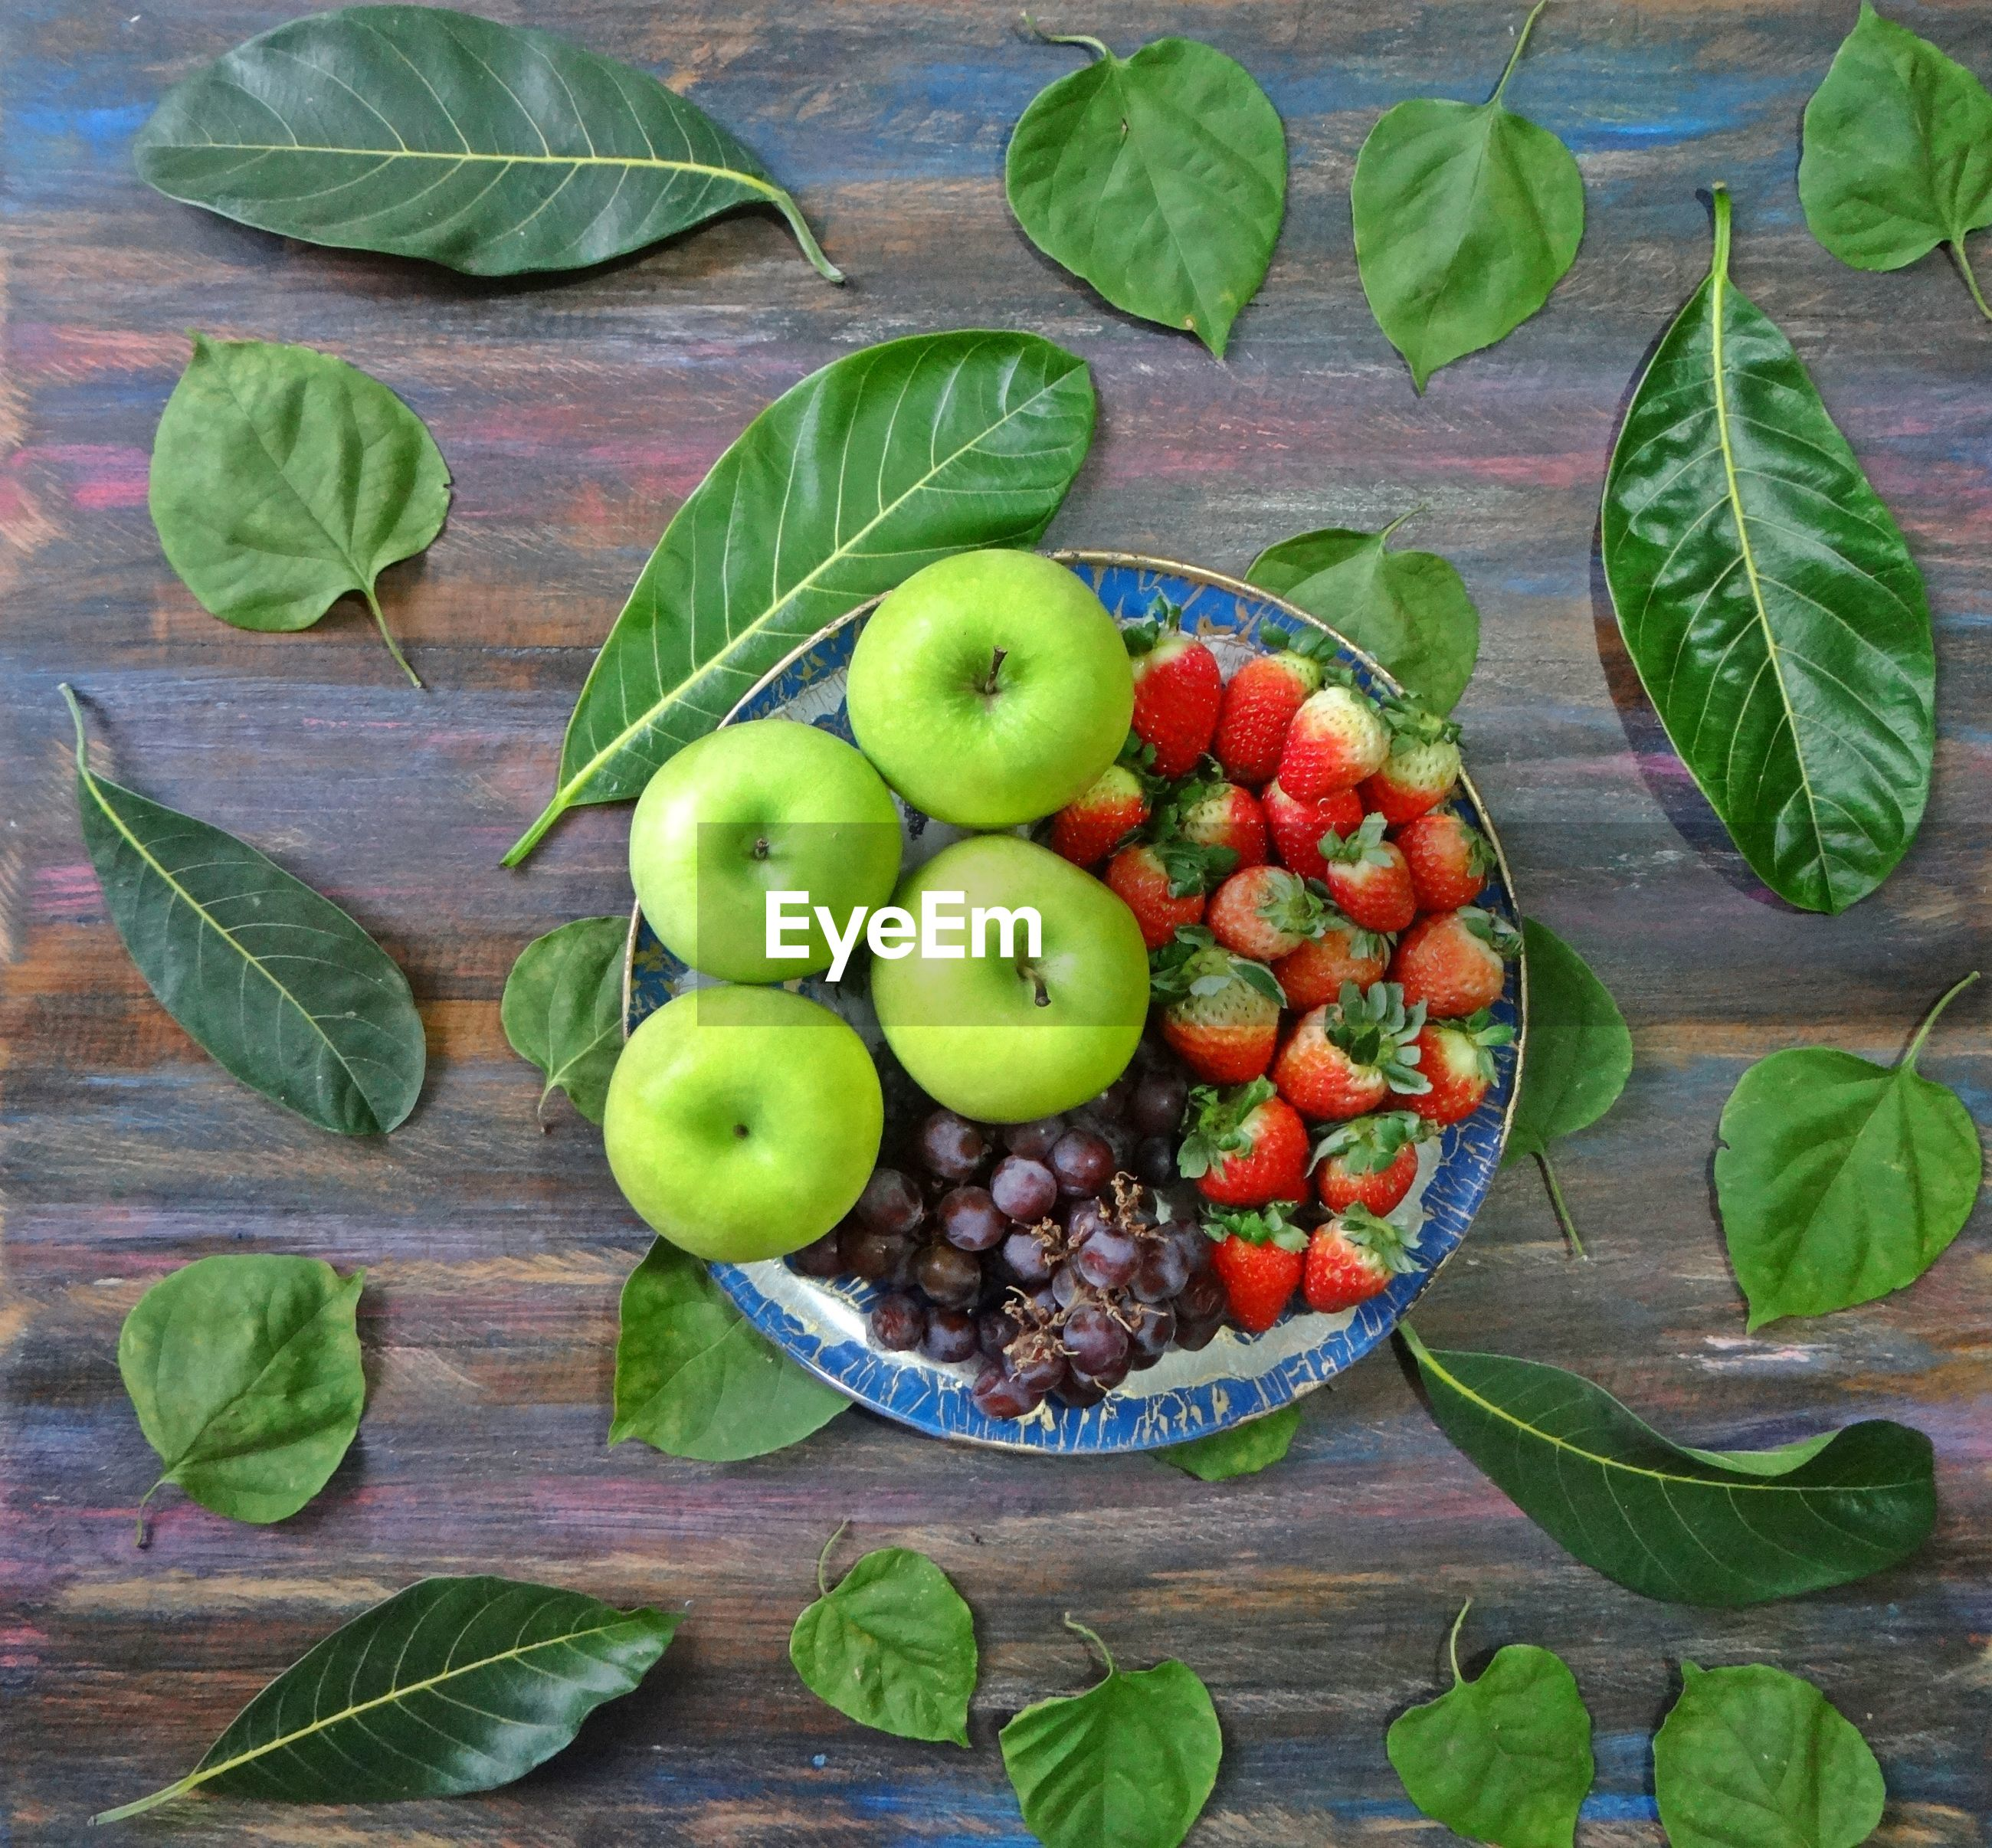 High angle view of fruits in plate with leaves on wooden table